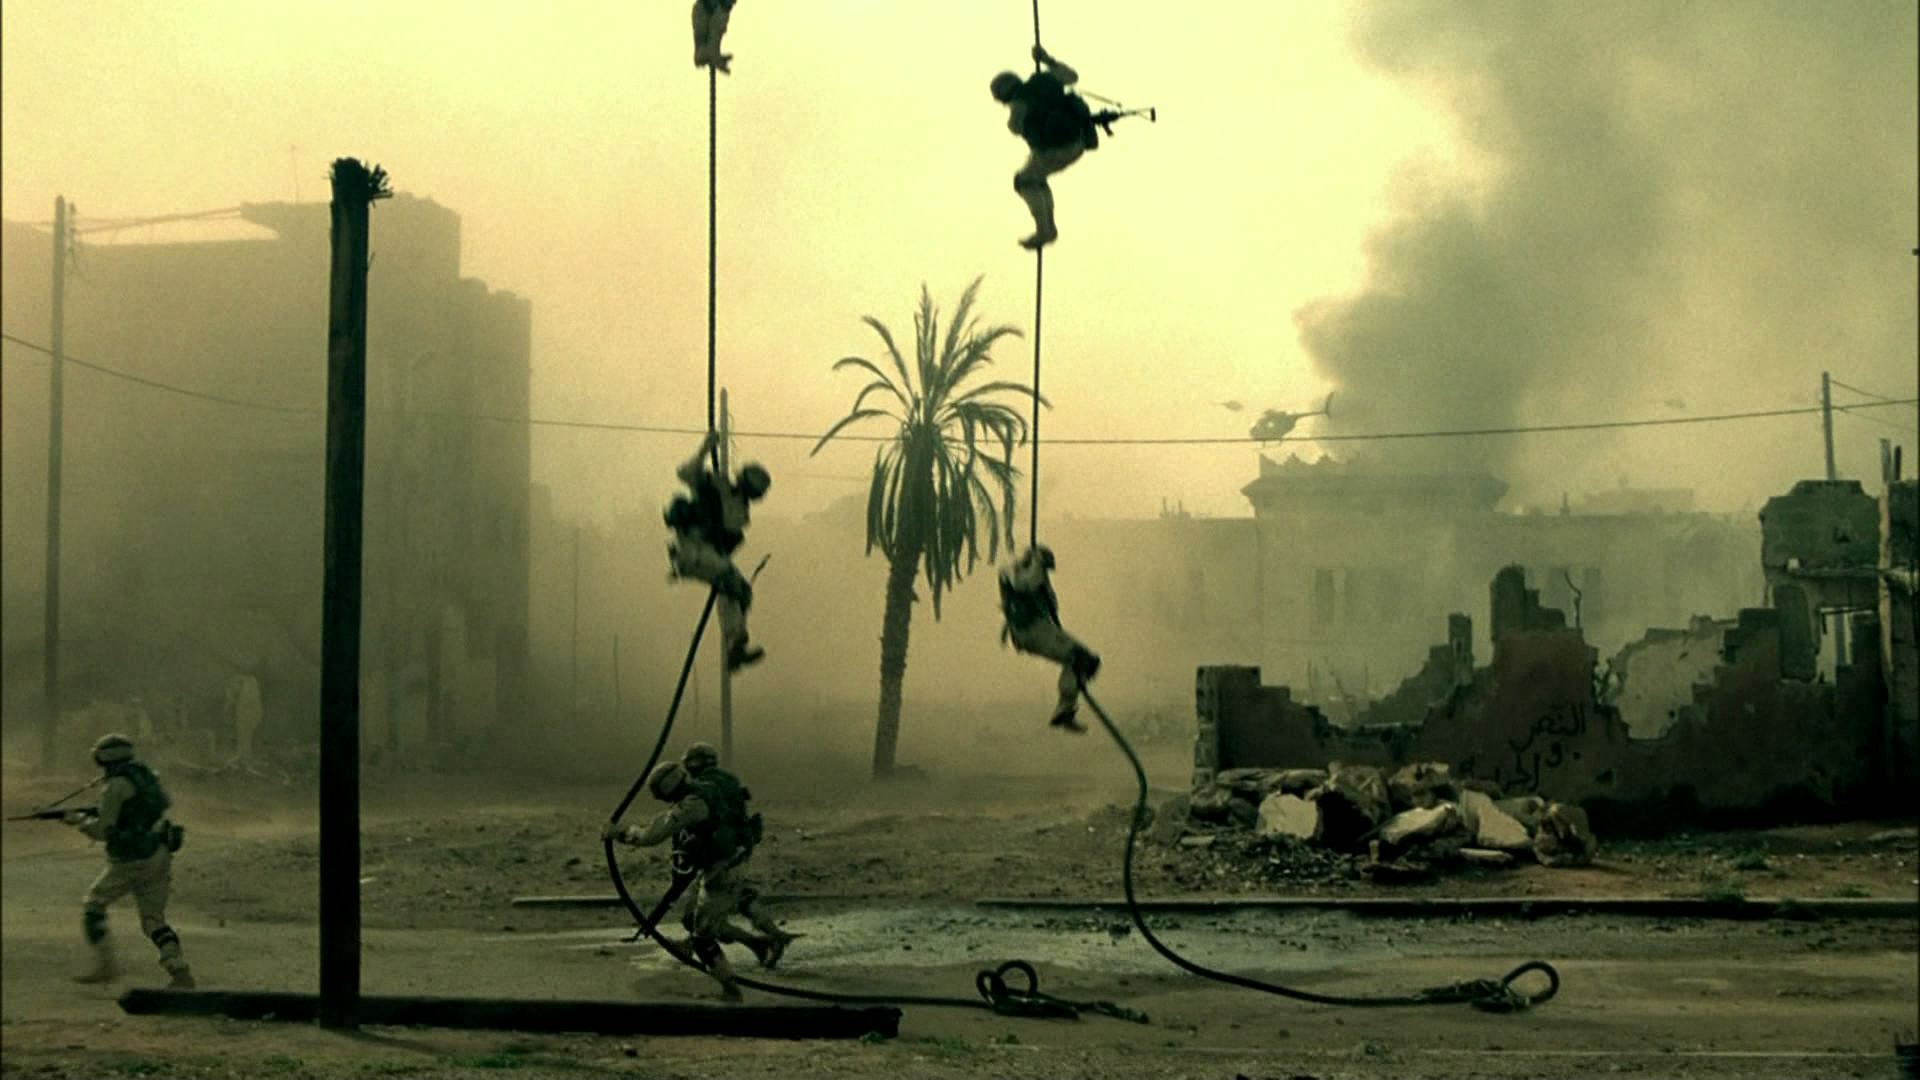 BLACK HAWK DOWN Drama History War Action Black Hawk Down Military Soldier Battle G Wallpaper